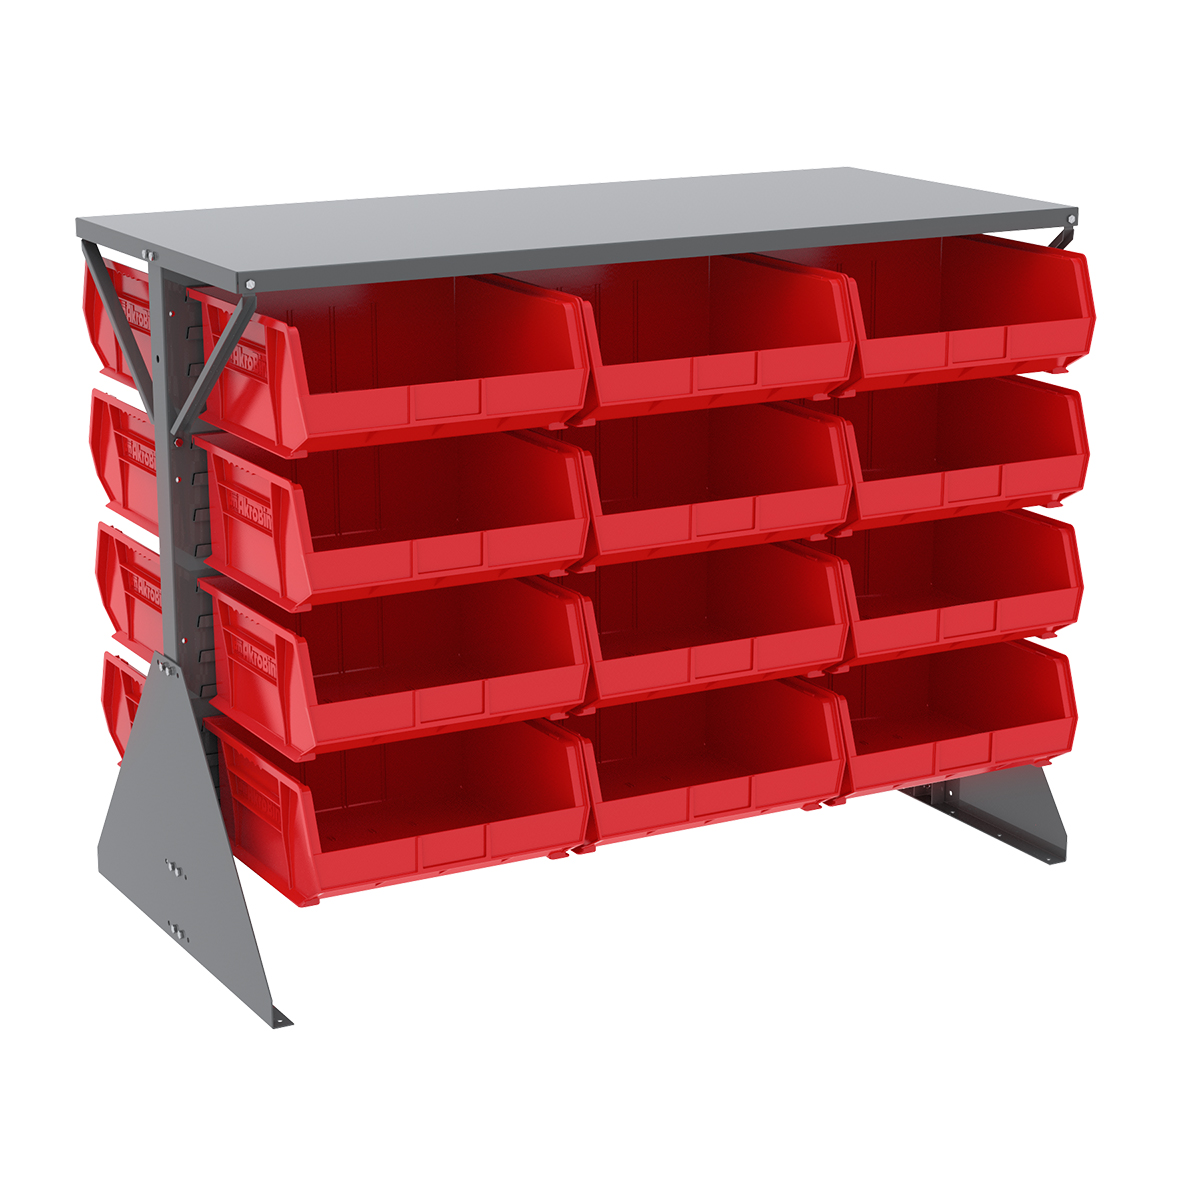 Item DISCONTINUED by Manufacturer.  Low Profile Floor Rack, 2-Sided, Shelf w/ 24 AkroBins, Gray/Red (30606GY250R).  This item sold in carton quantities of 1.